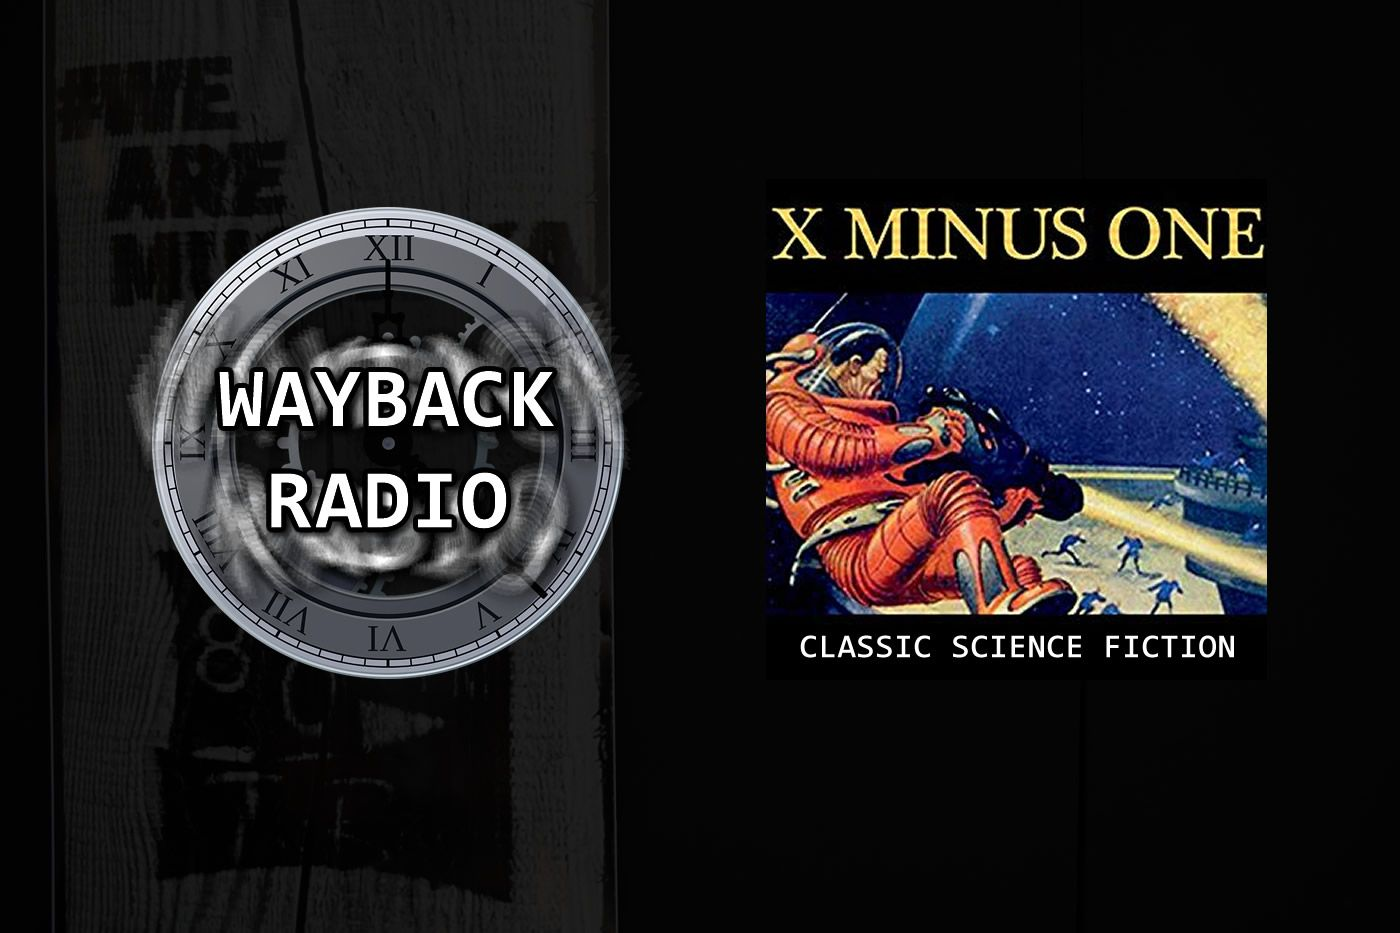 Wayback Radio - X MINUS ONE